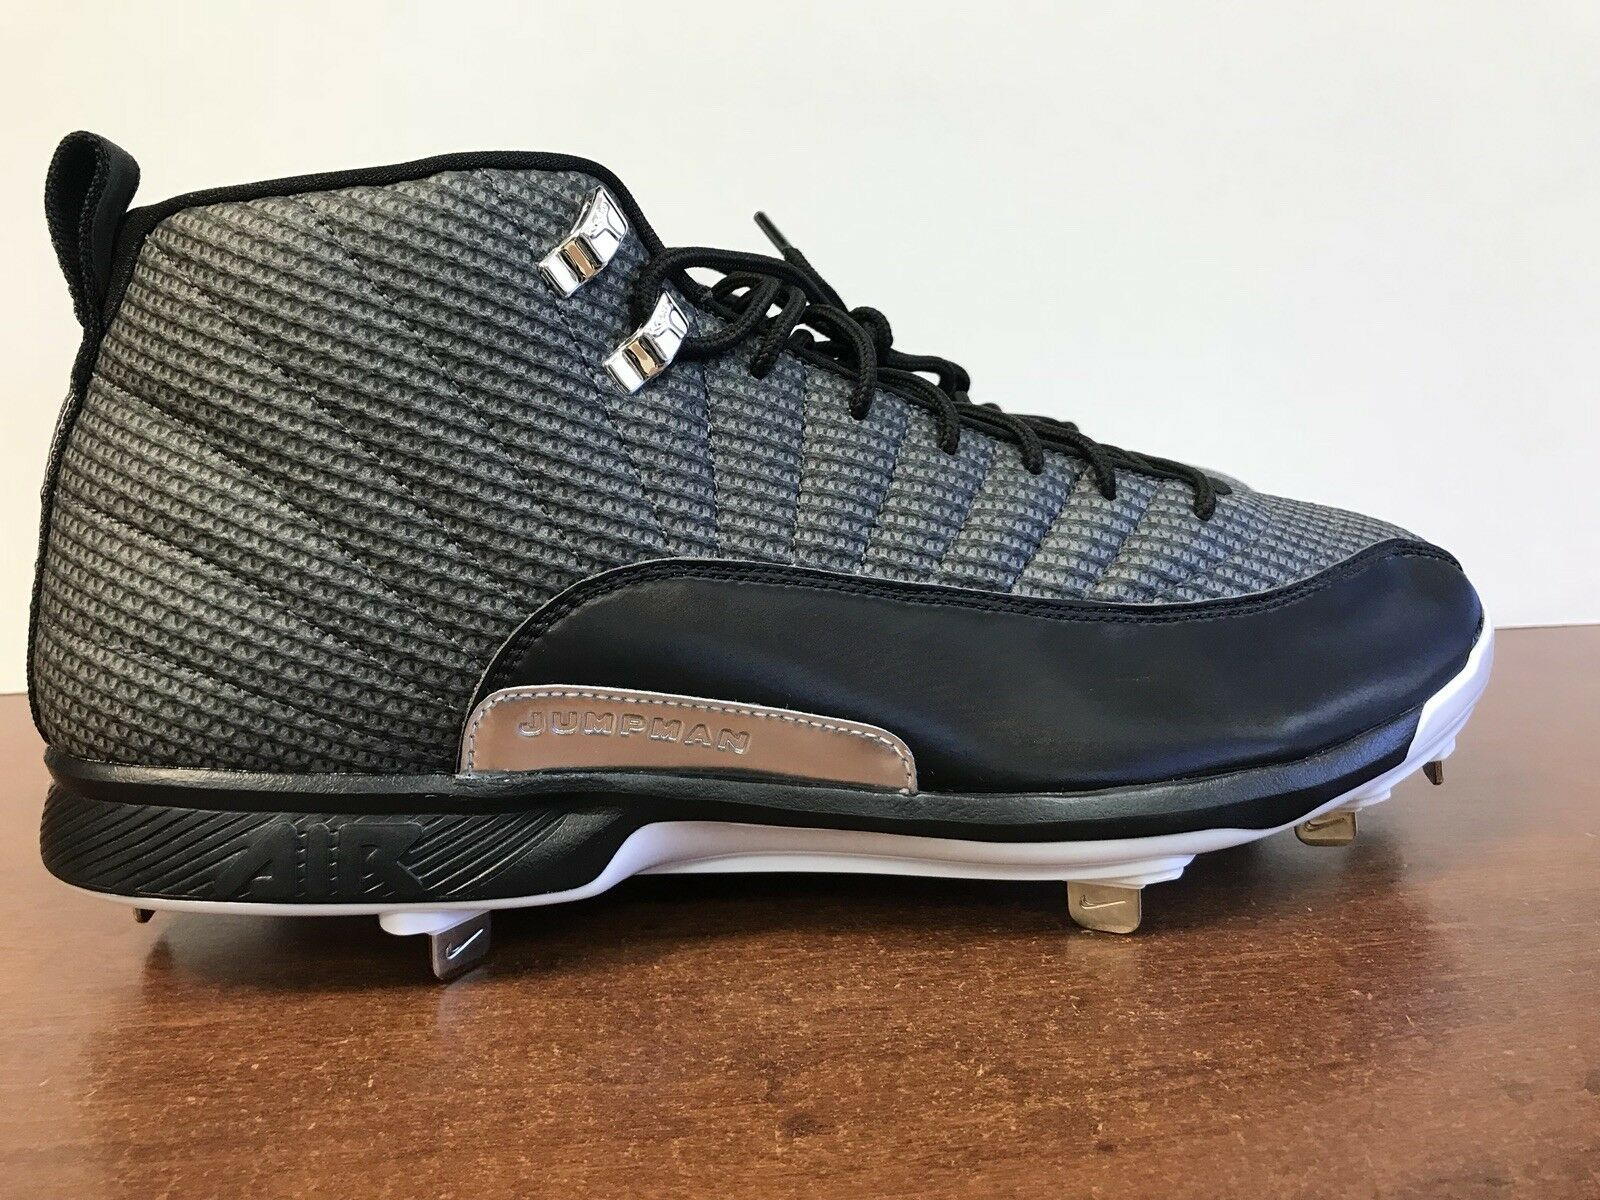 AIR JORDAN 12 XII RETRO METAL CLEATS Price reduction New shoes for men and women, limited time discount